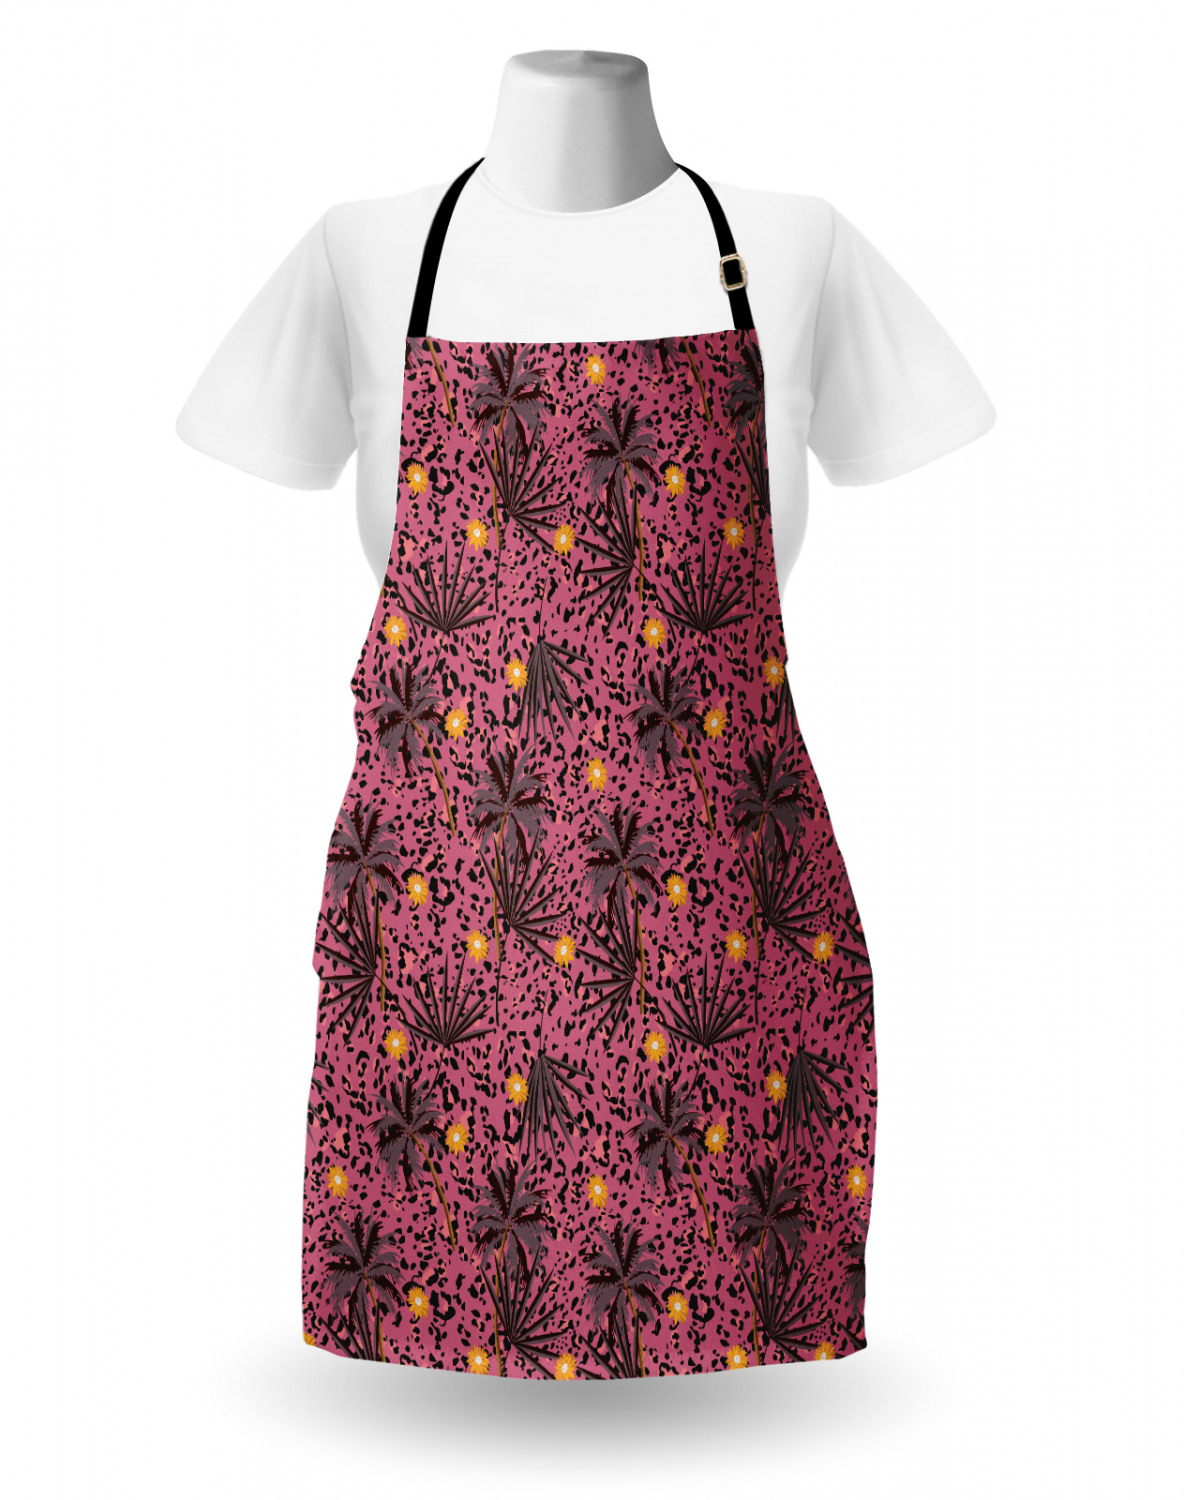 Ambesonne-Outdoor-Use-Apron-with-Adjustable-Neck-Strap-for-Gardening-and-Cooking miniatura 35